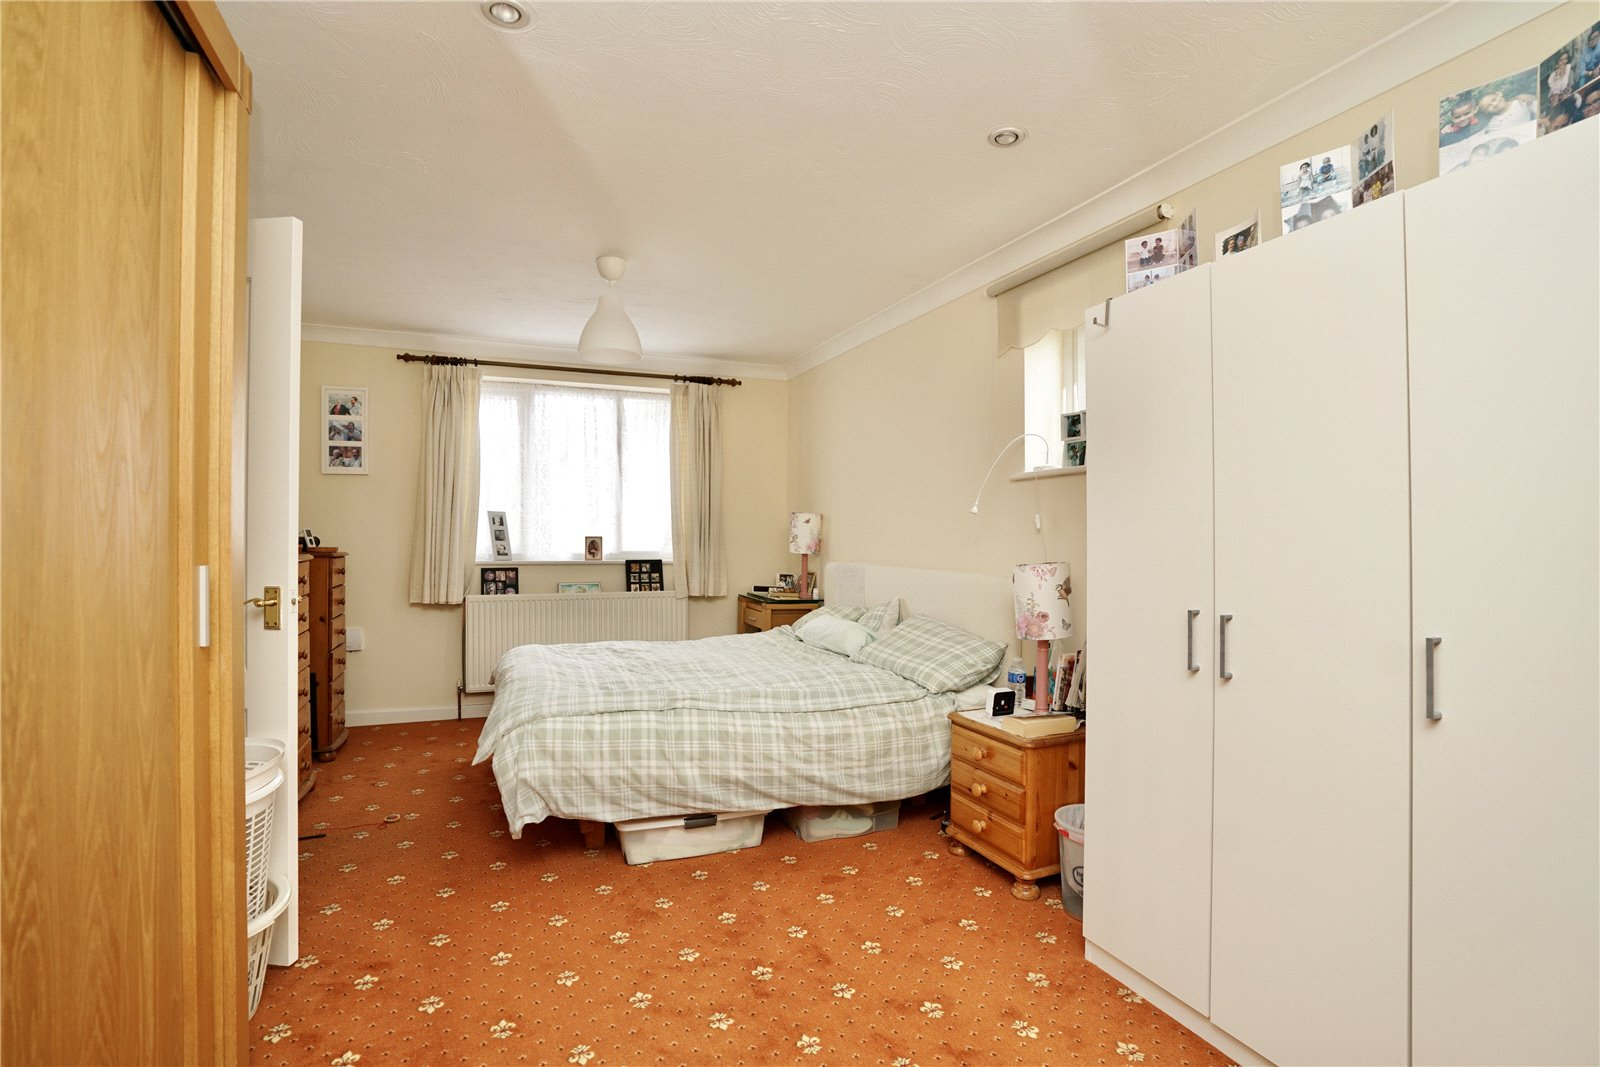 3 bed house for sale in Cunningham Way, Eaton Socon  - Property Image 4